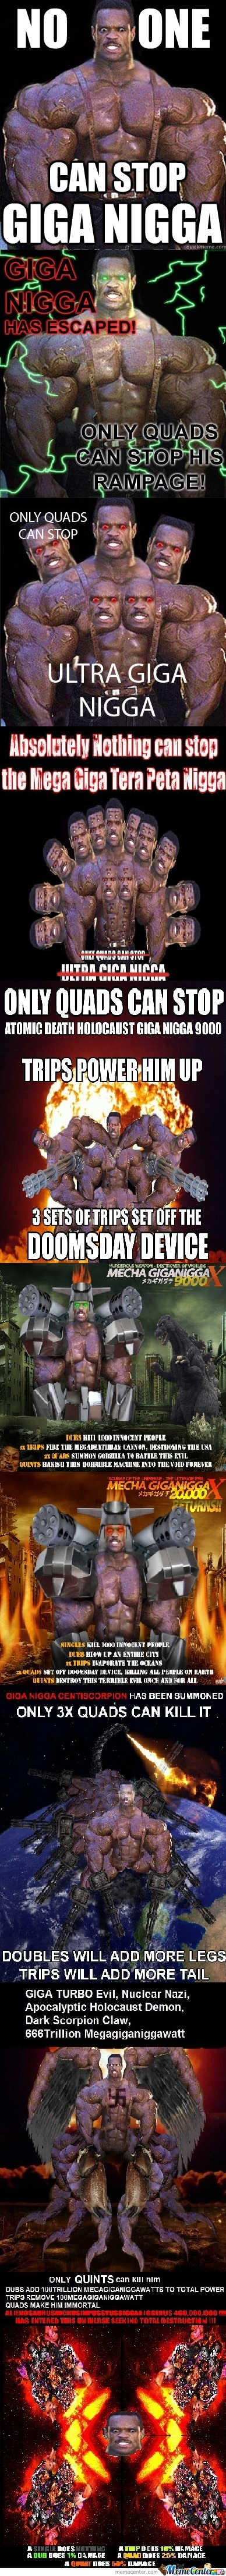 Gigga Nigga Has Come, And Now You're All Doom! (All Credits Go To The People Who Created The Images, Whoever They Be)